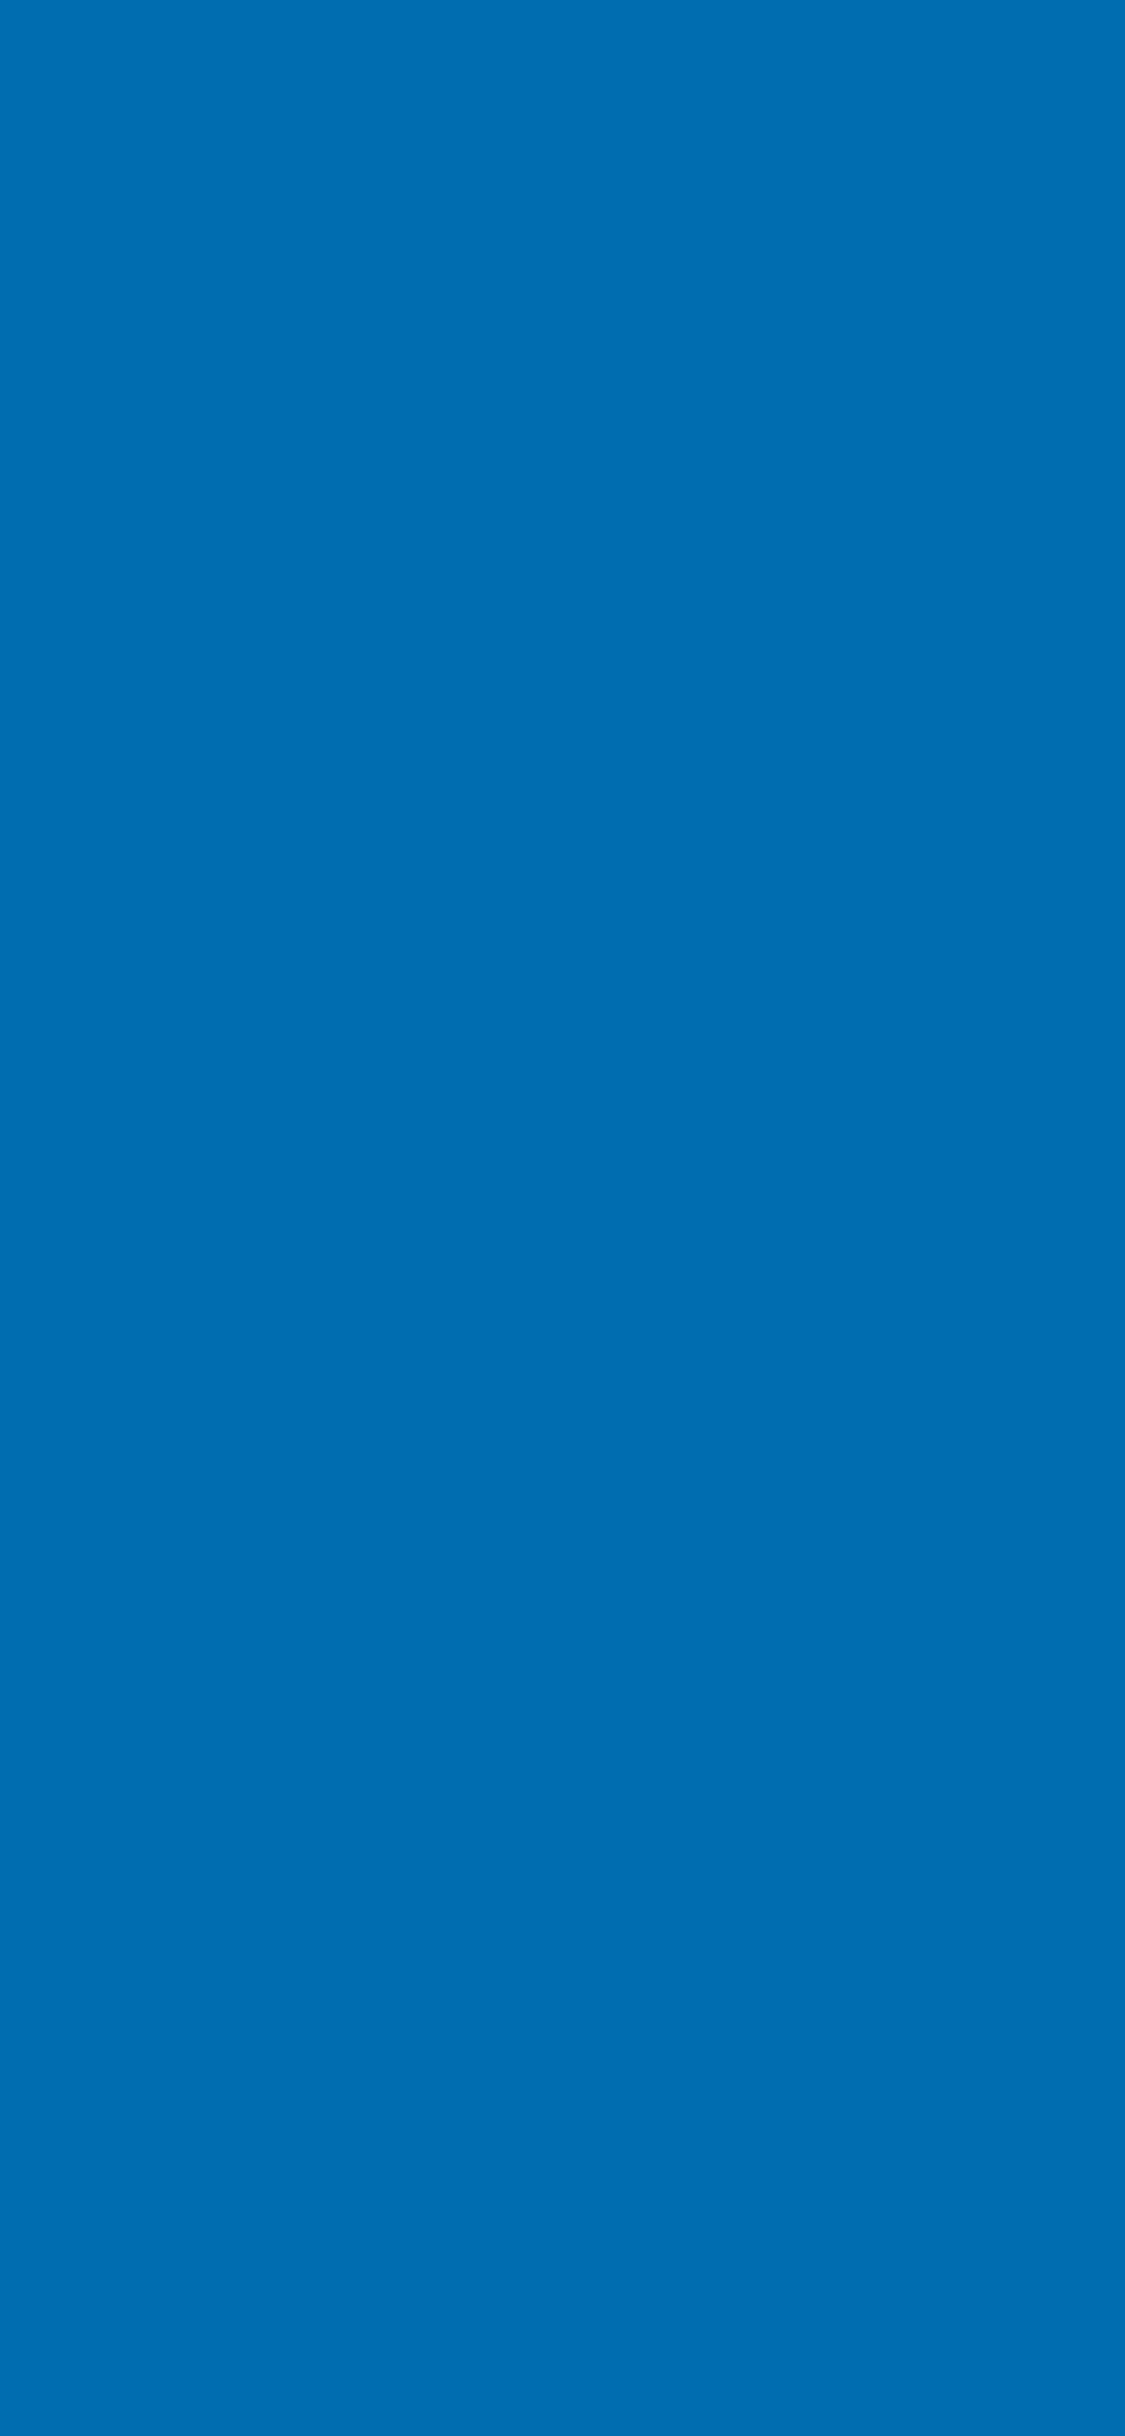 1125x2436 Honolulu Blue Solid Color Background